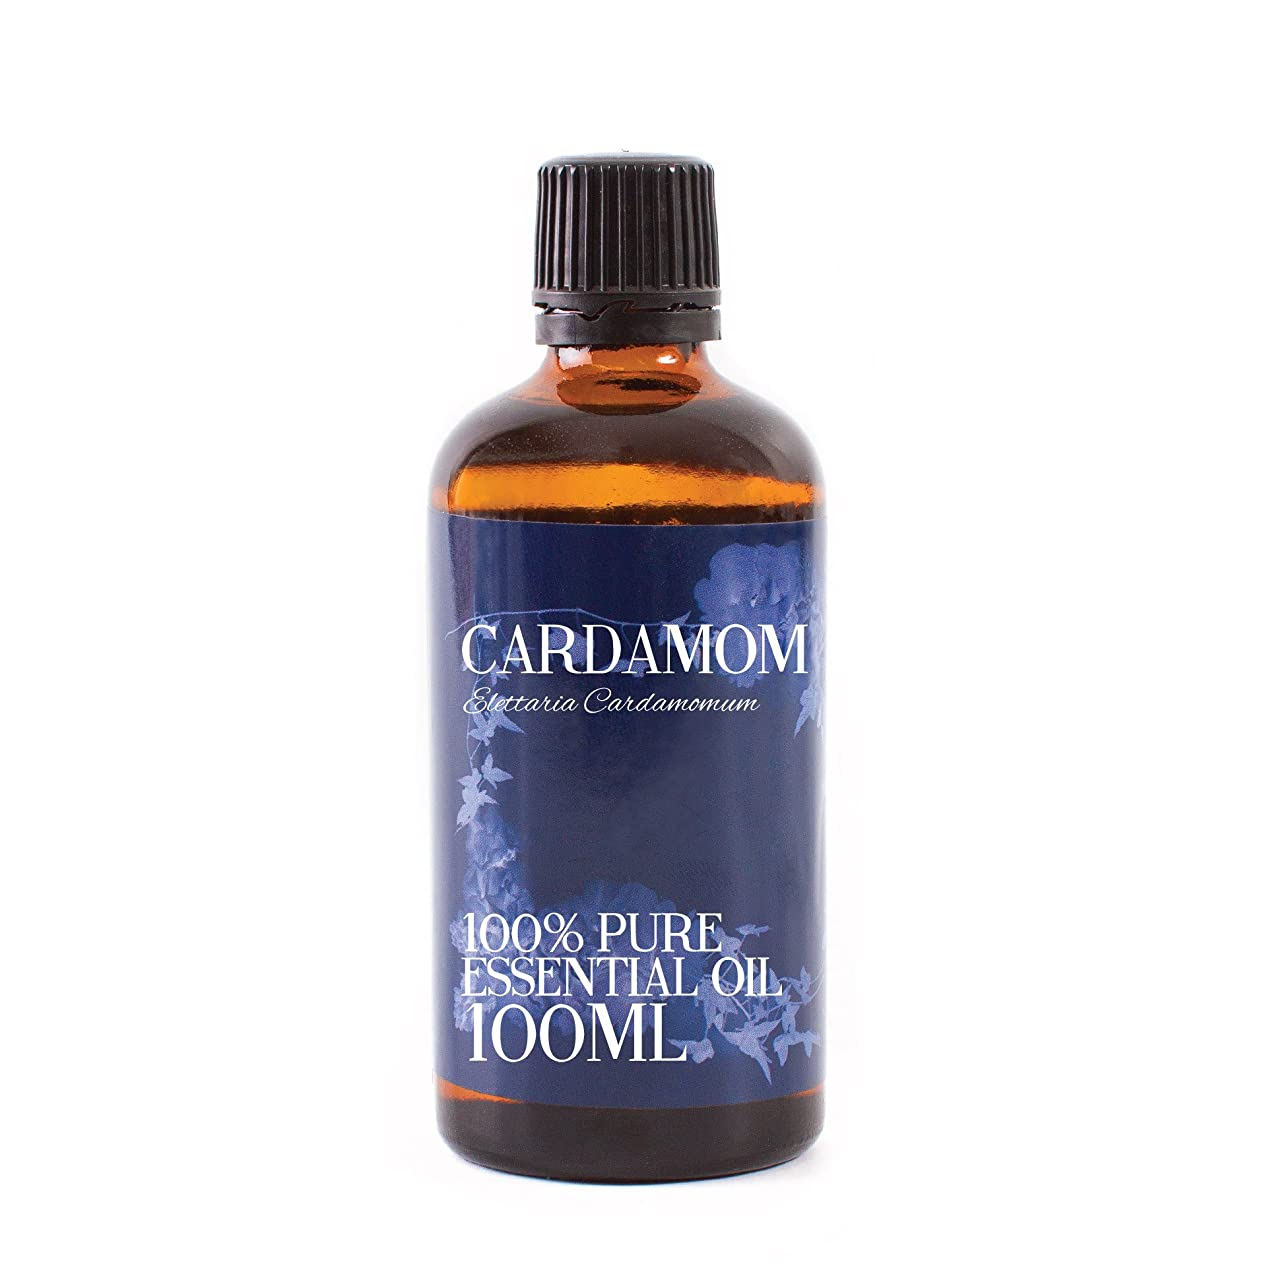 作成者アルカトラズ島エクスタシーMystic Moments | Cardamom Essential Oil - 100ml - 100% pure